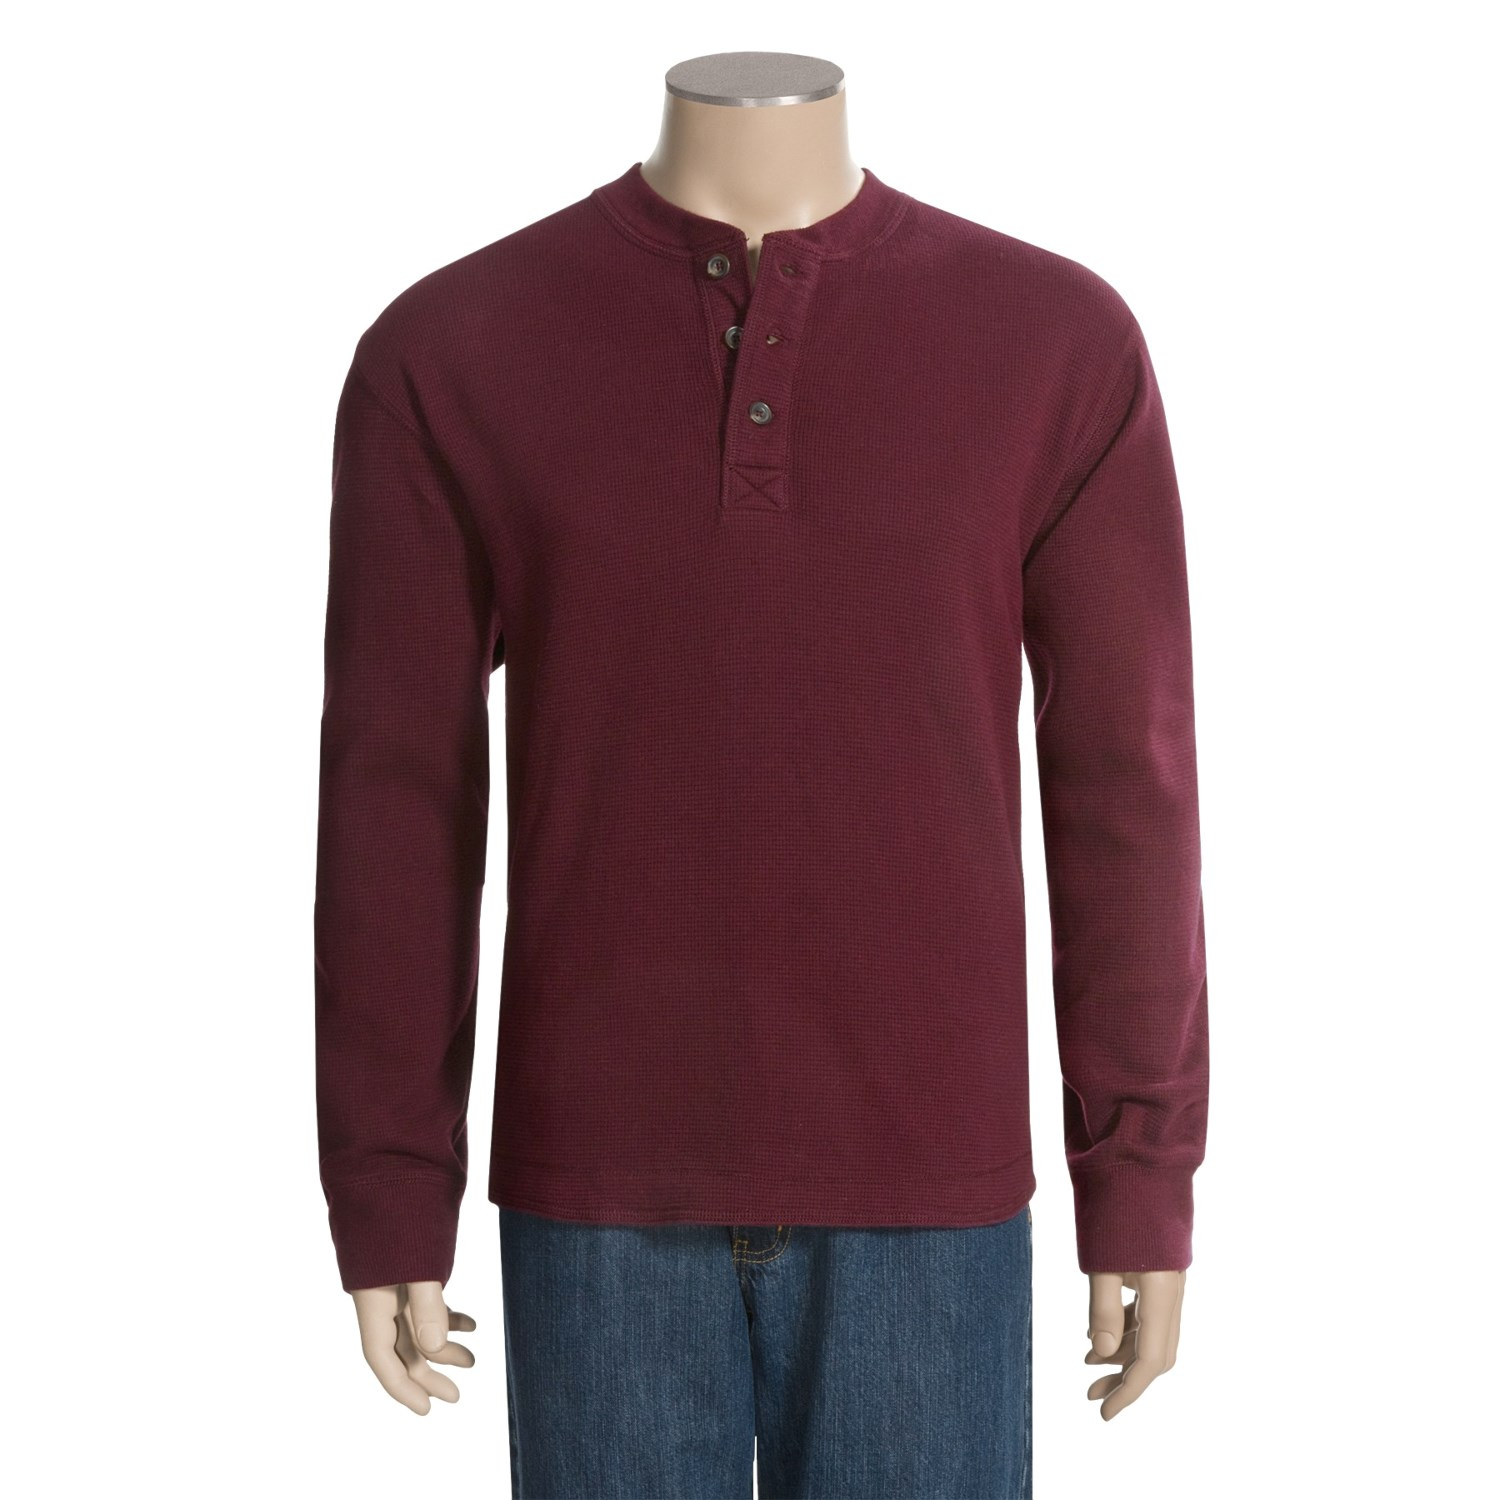 Knit thermal henley shirt for men 3855f save 54 for Men s thermal henley long sleeve shirts